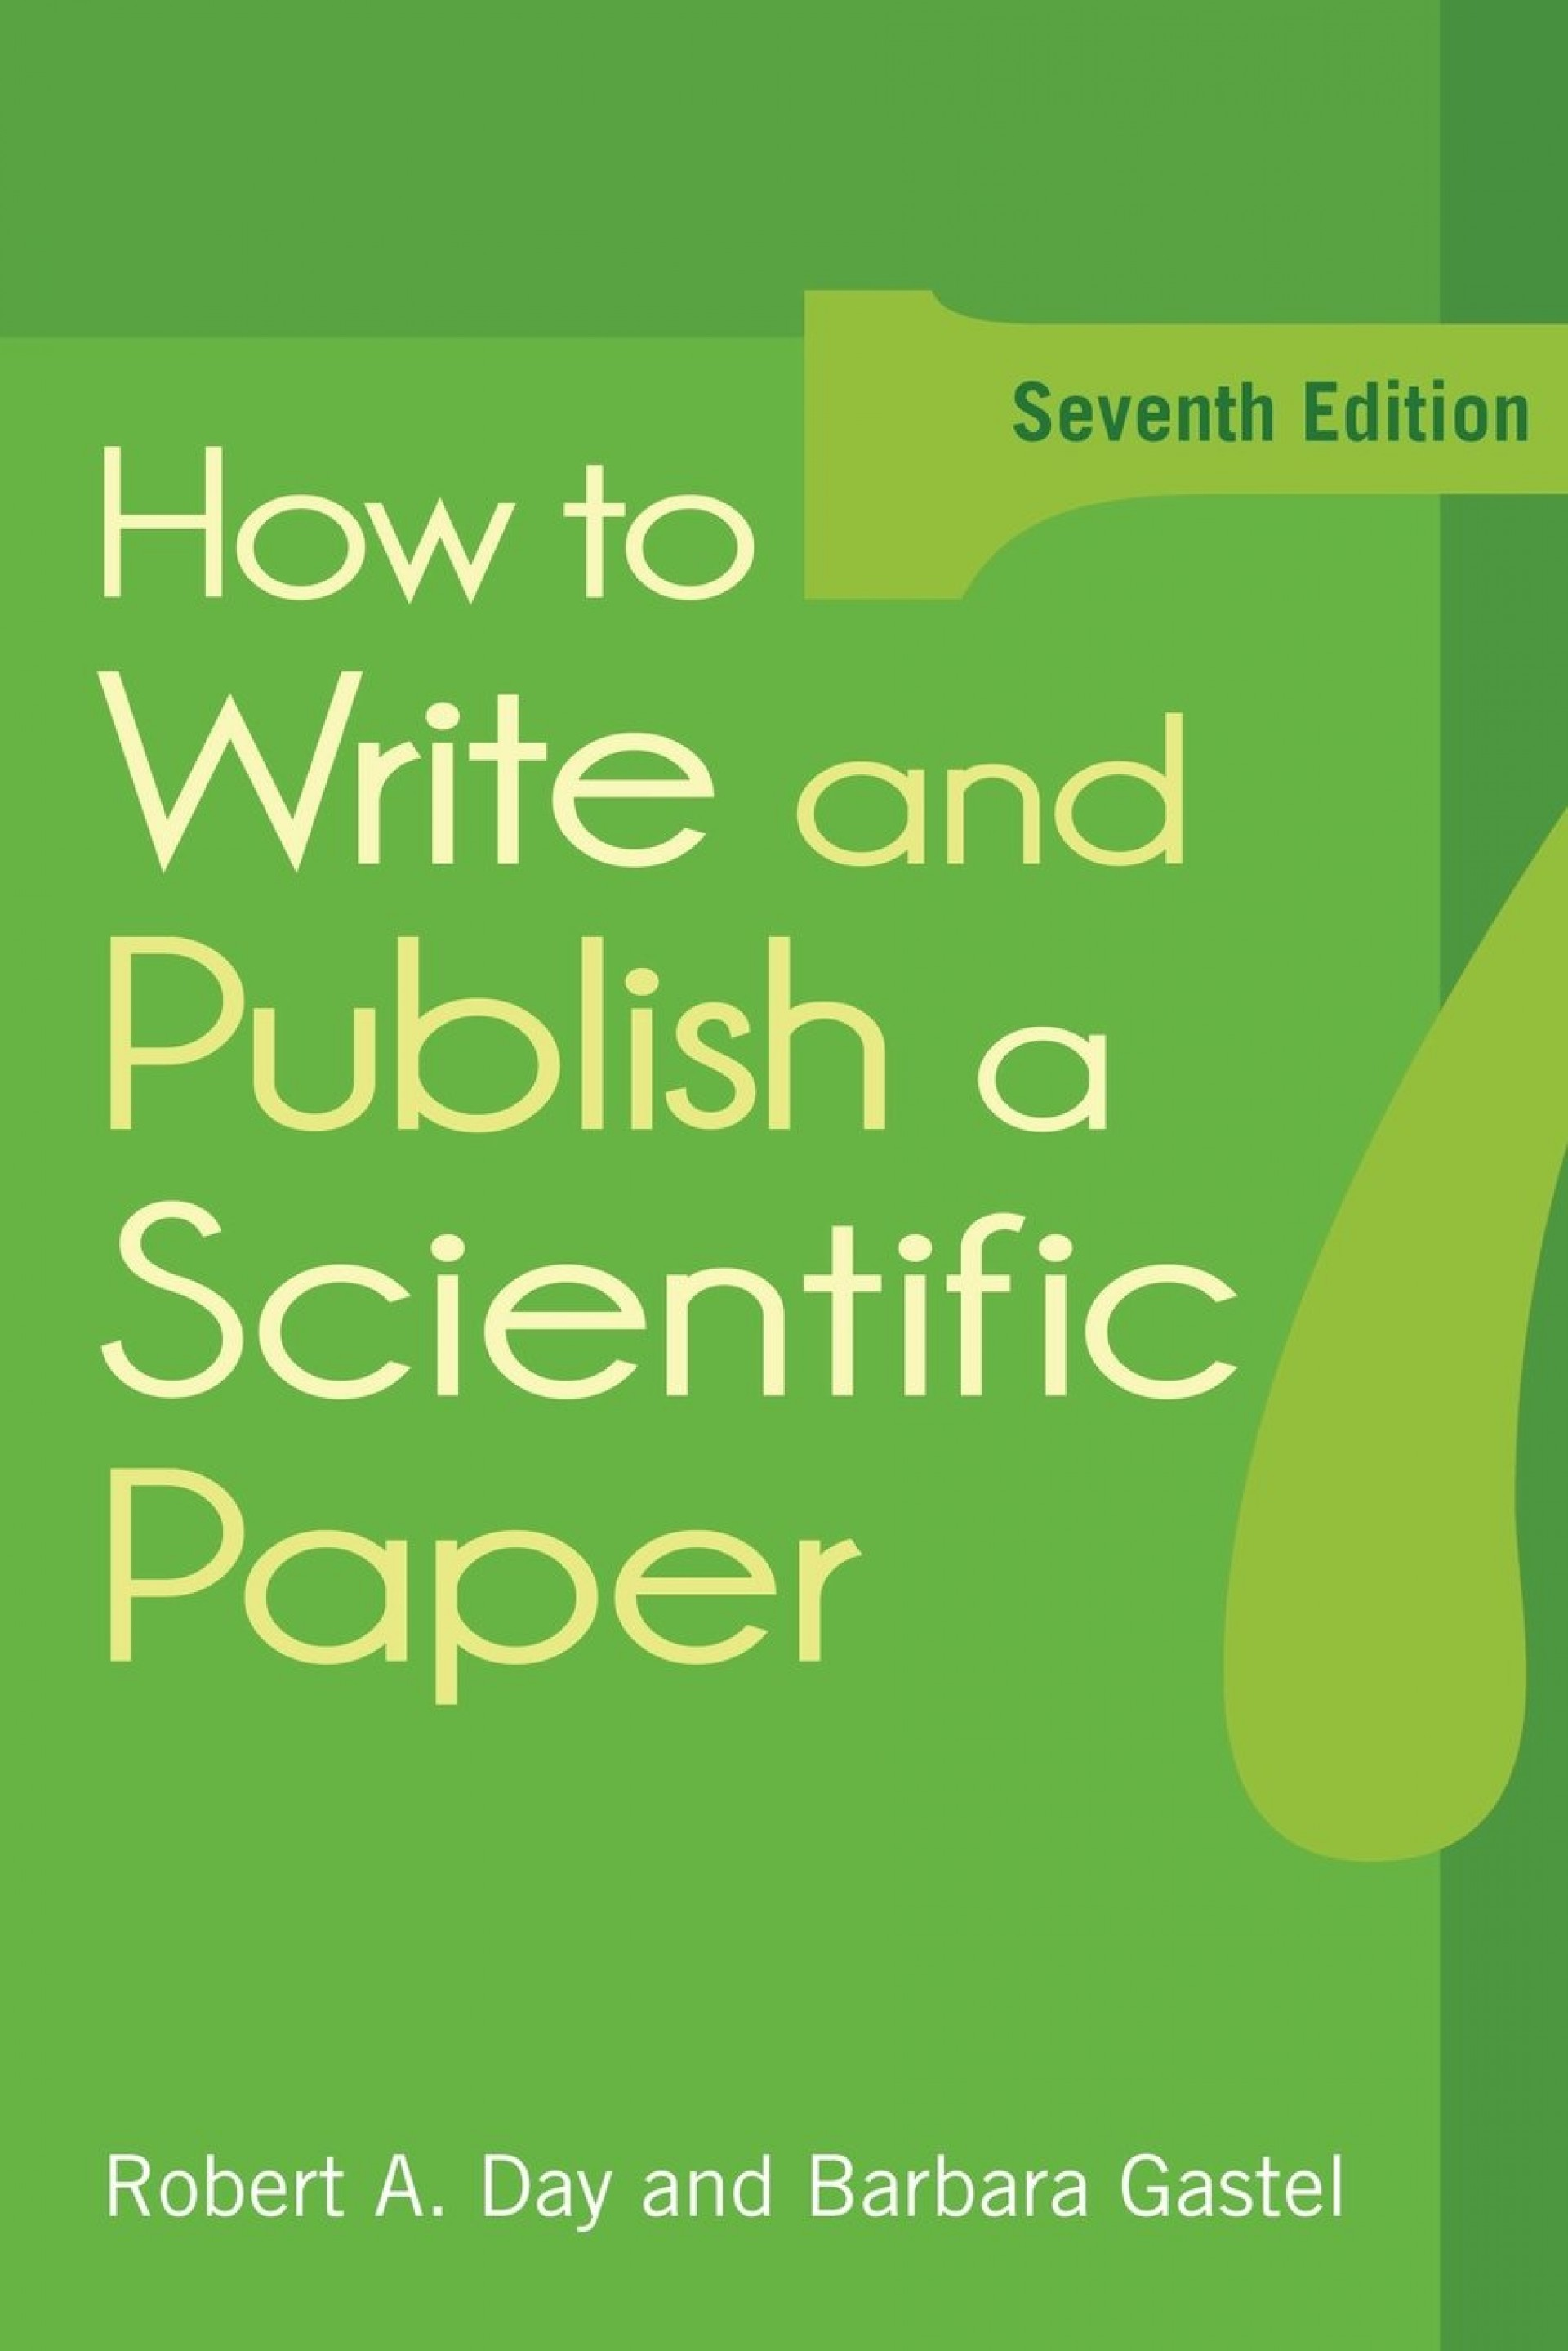 001 Research Paper 61akxkcqzal How To Write And Publish Scientific Surprising A Pdf 1920